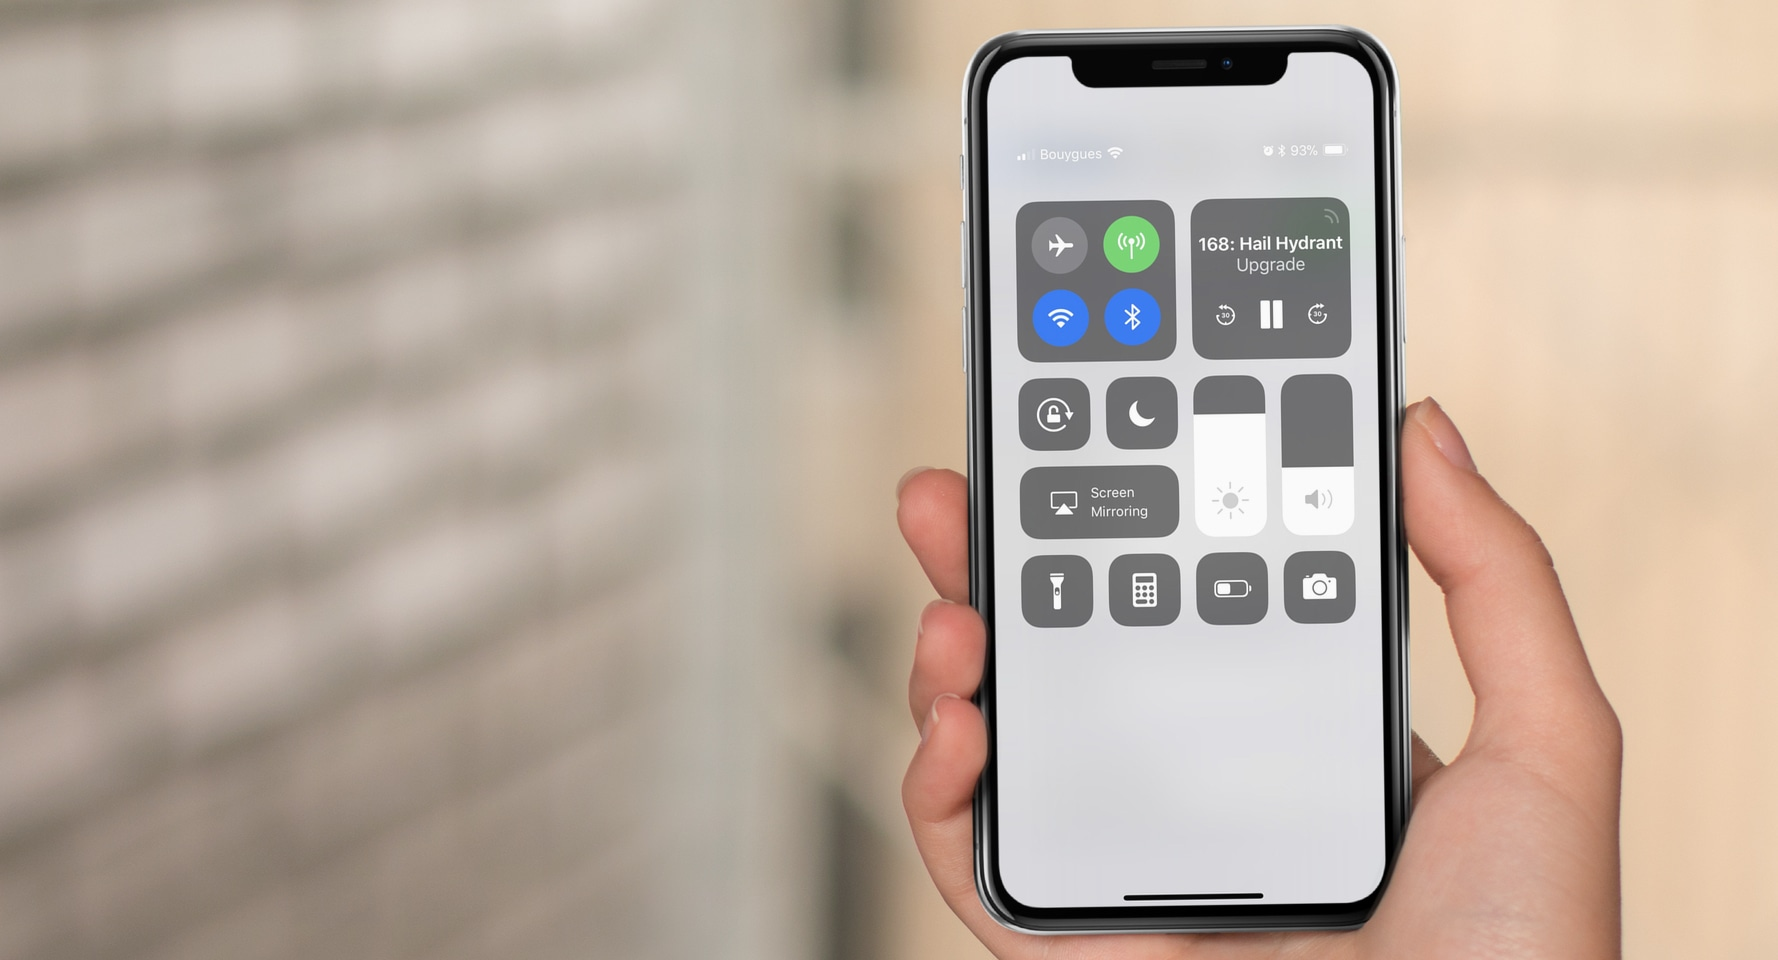 iPhone X Control Center